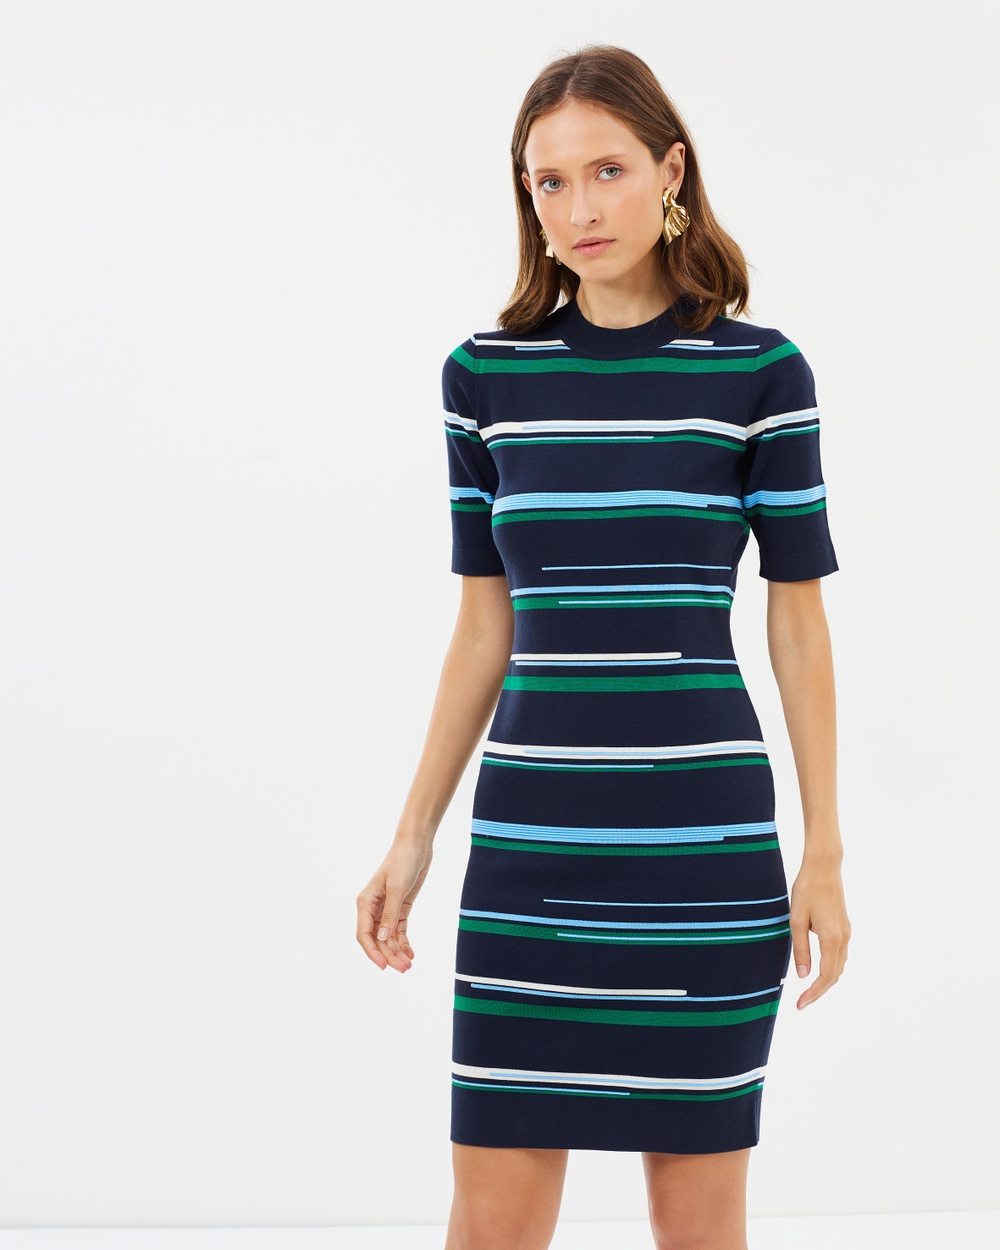 GREY Jason Wu Striped Short Sleeve Crew Neck Knit Dress Bodycon Dresses Navy Striped Short Sleeve Crew-Neck Knit Dress